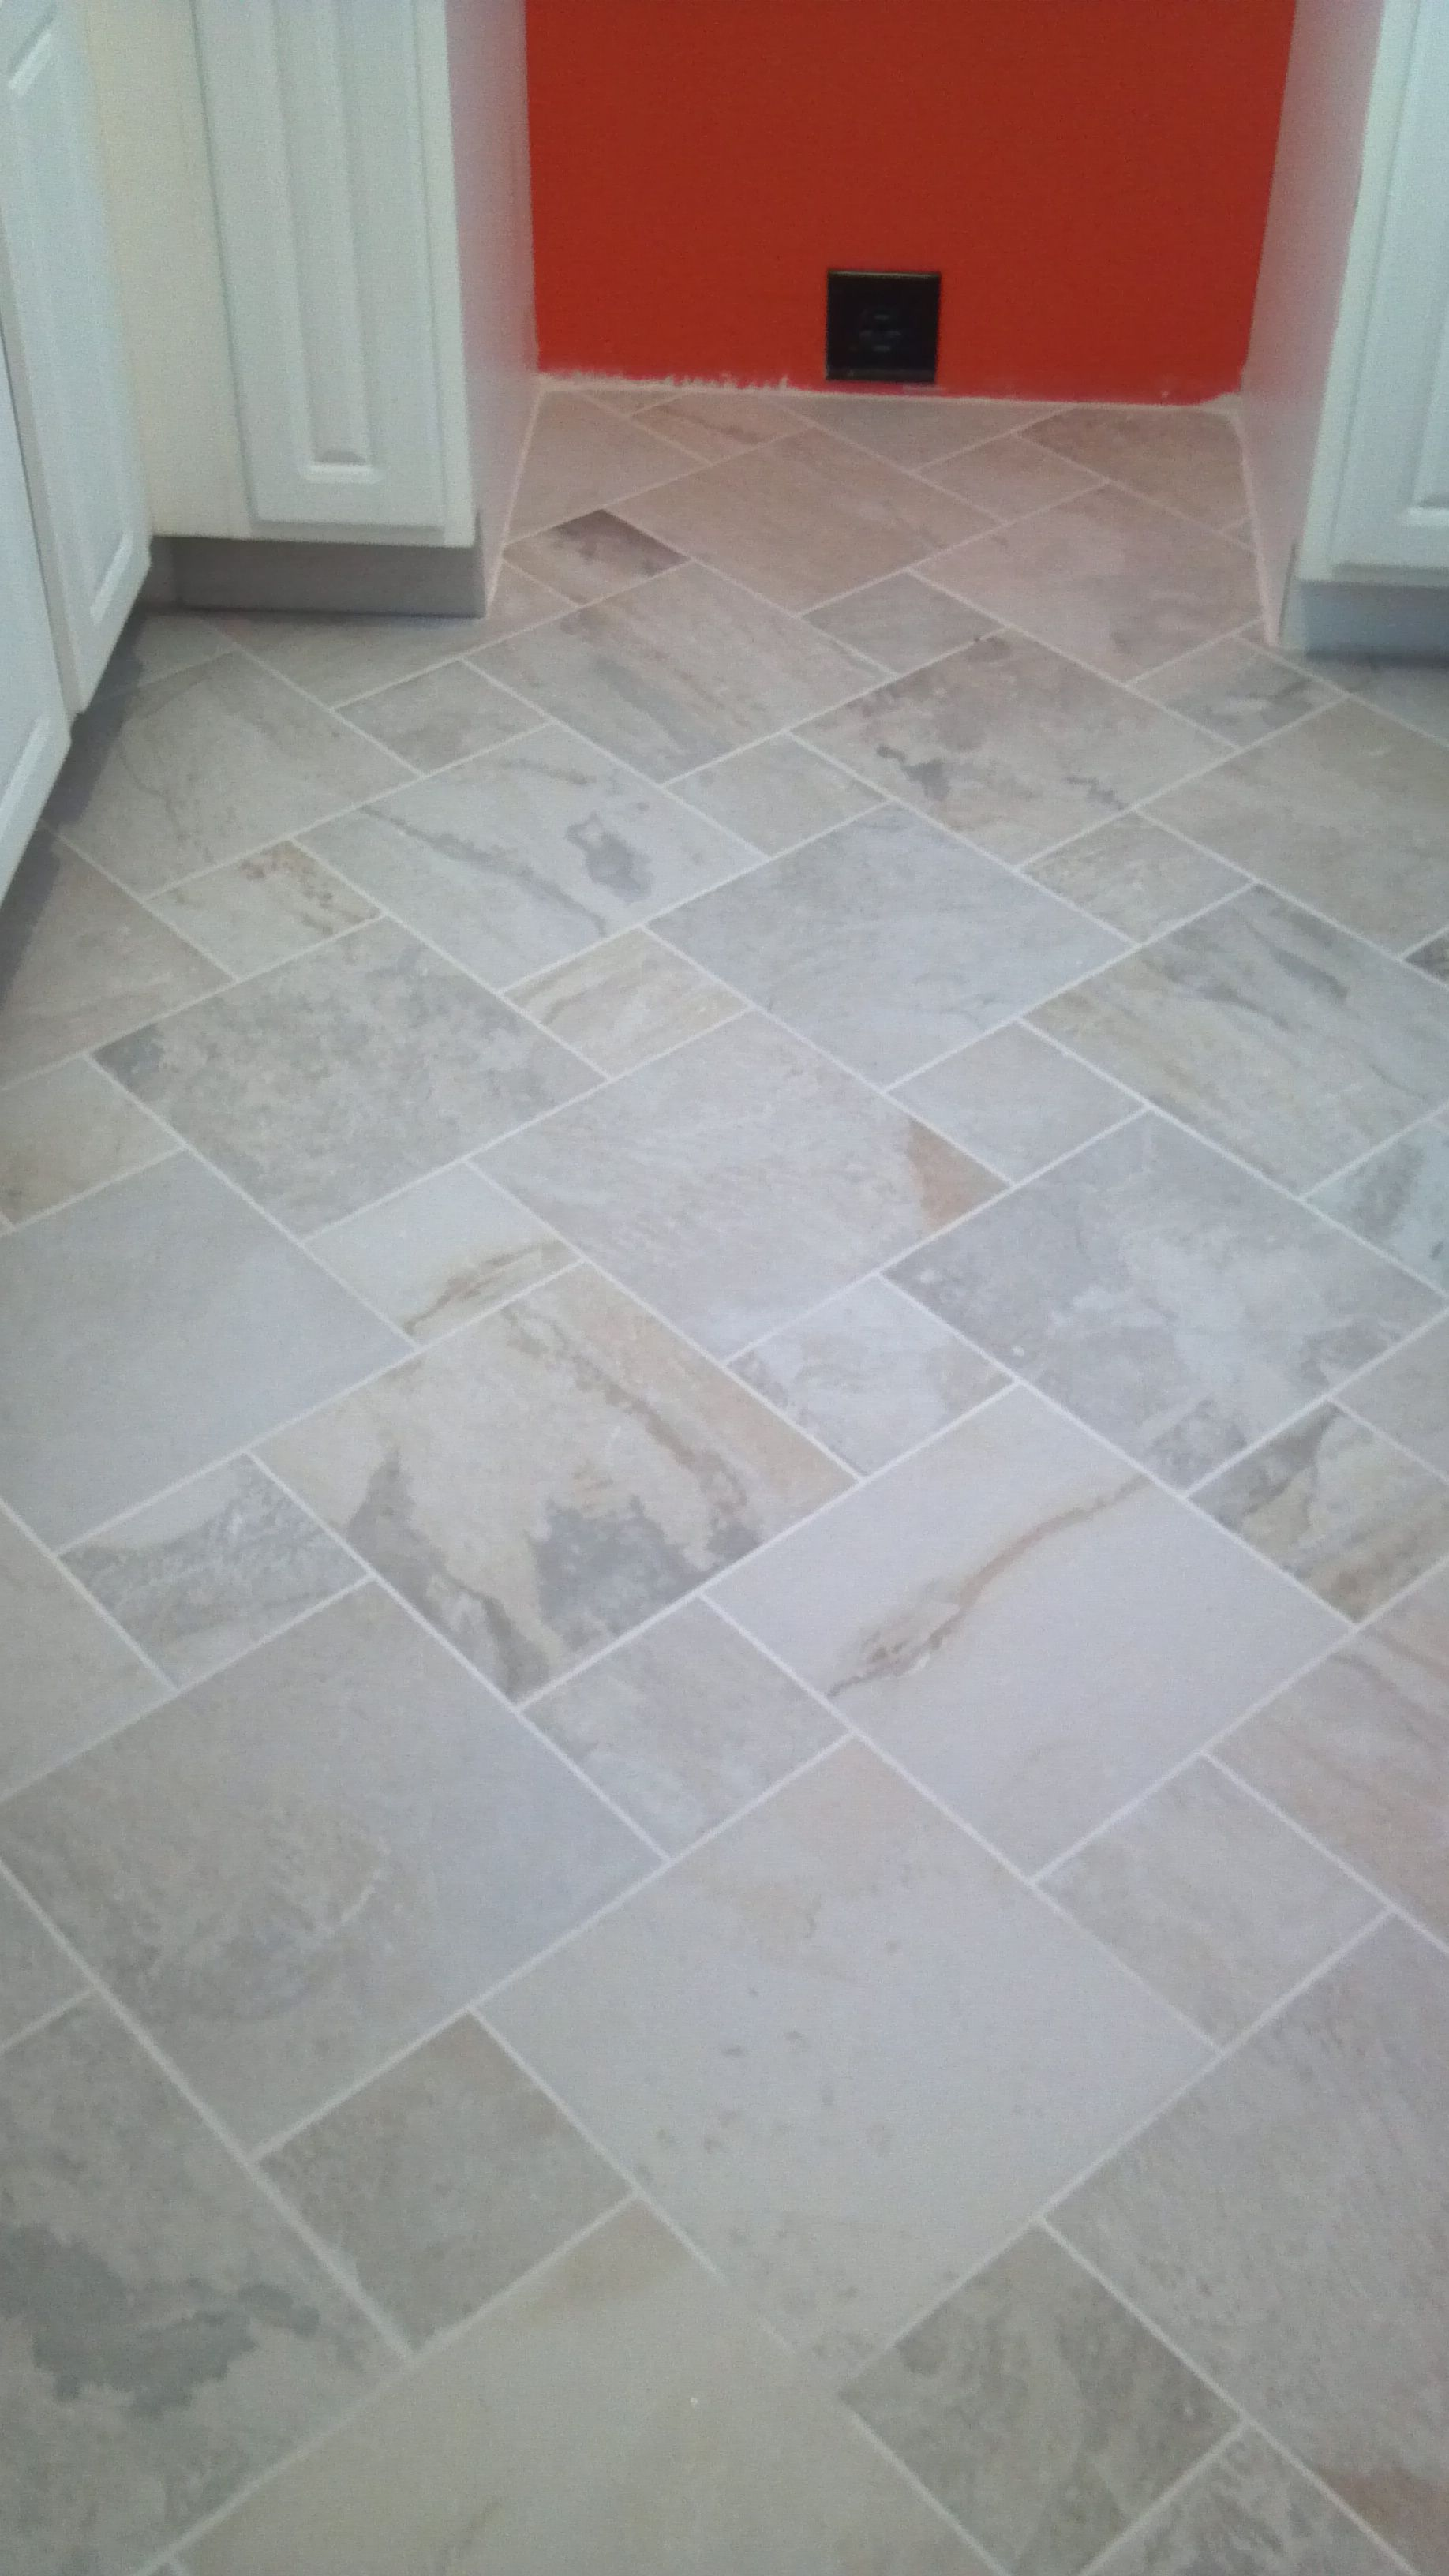 Kitchen Tiles At Lowes ivetta white porcelain tile - lowes | tile | pinterest | white